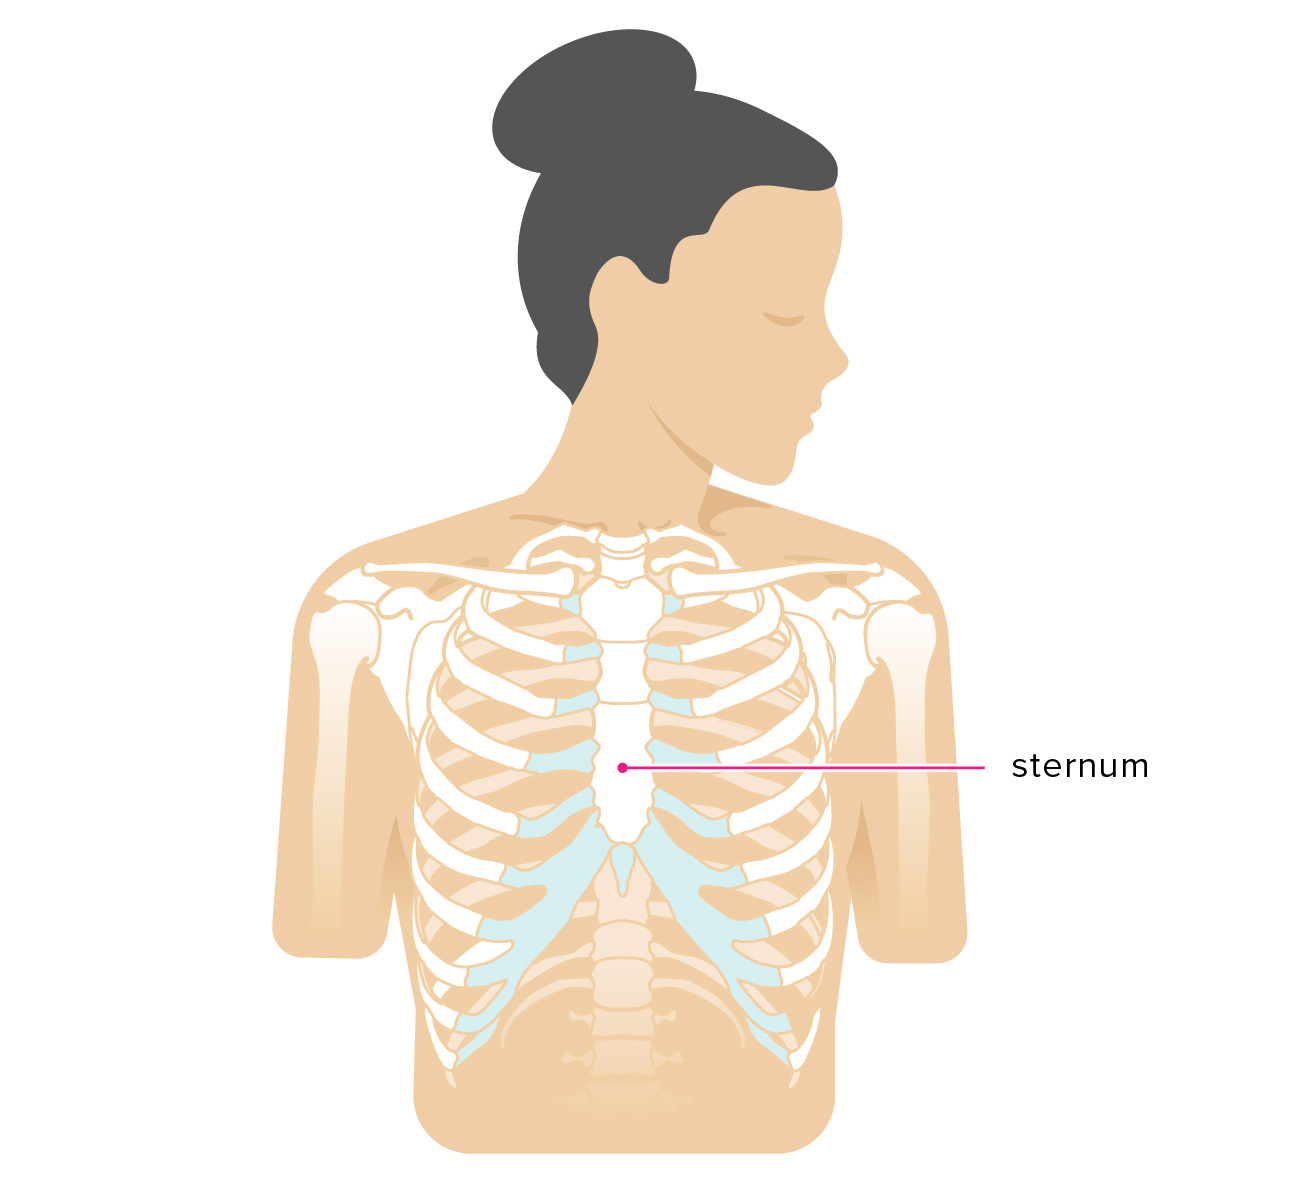 Broken Sternum Symptoms Car Accident Treatment And More